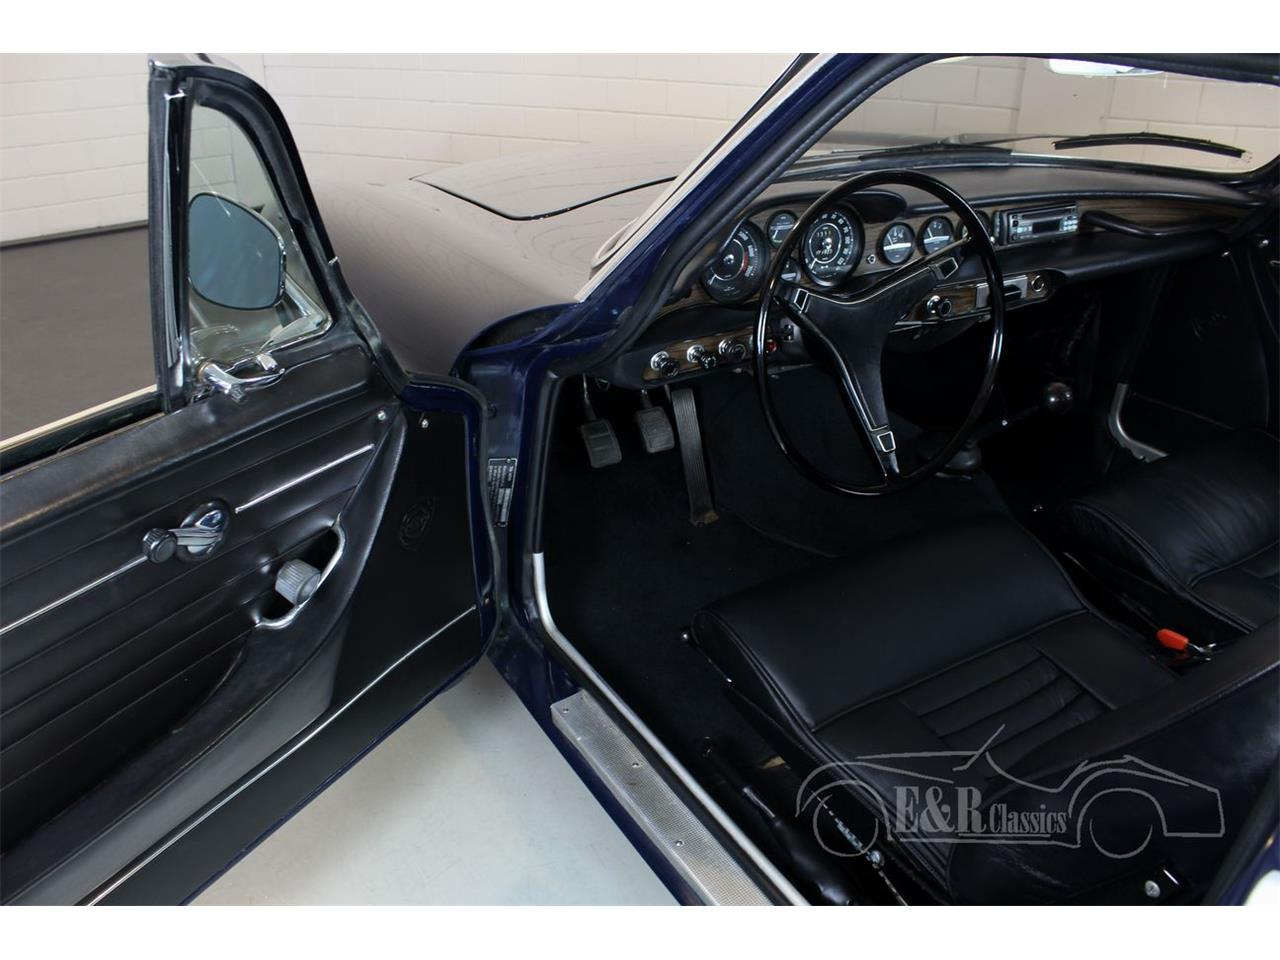 Large Picture of Classic '71 P1800E - $39,400.00 Offered by E & R Classics - Q95J